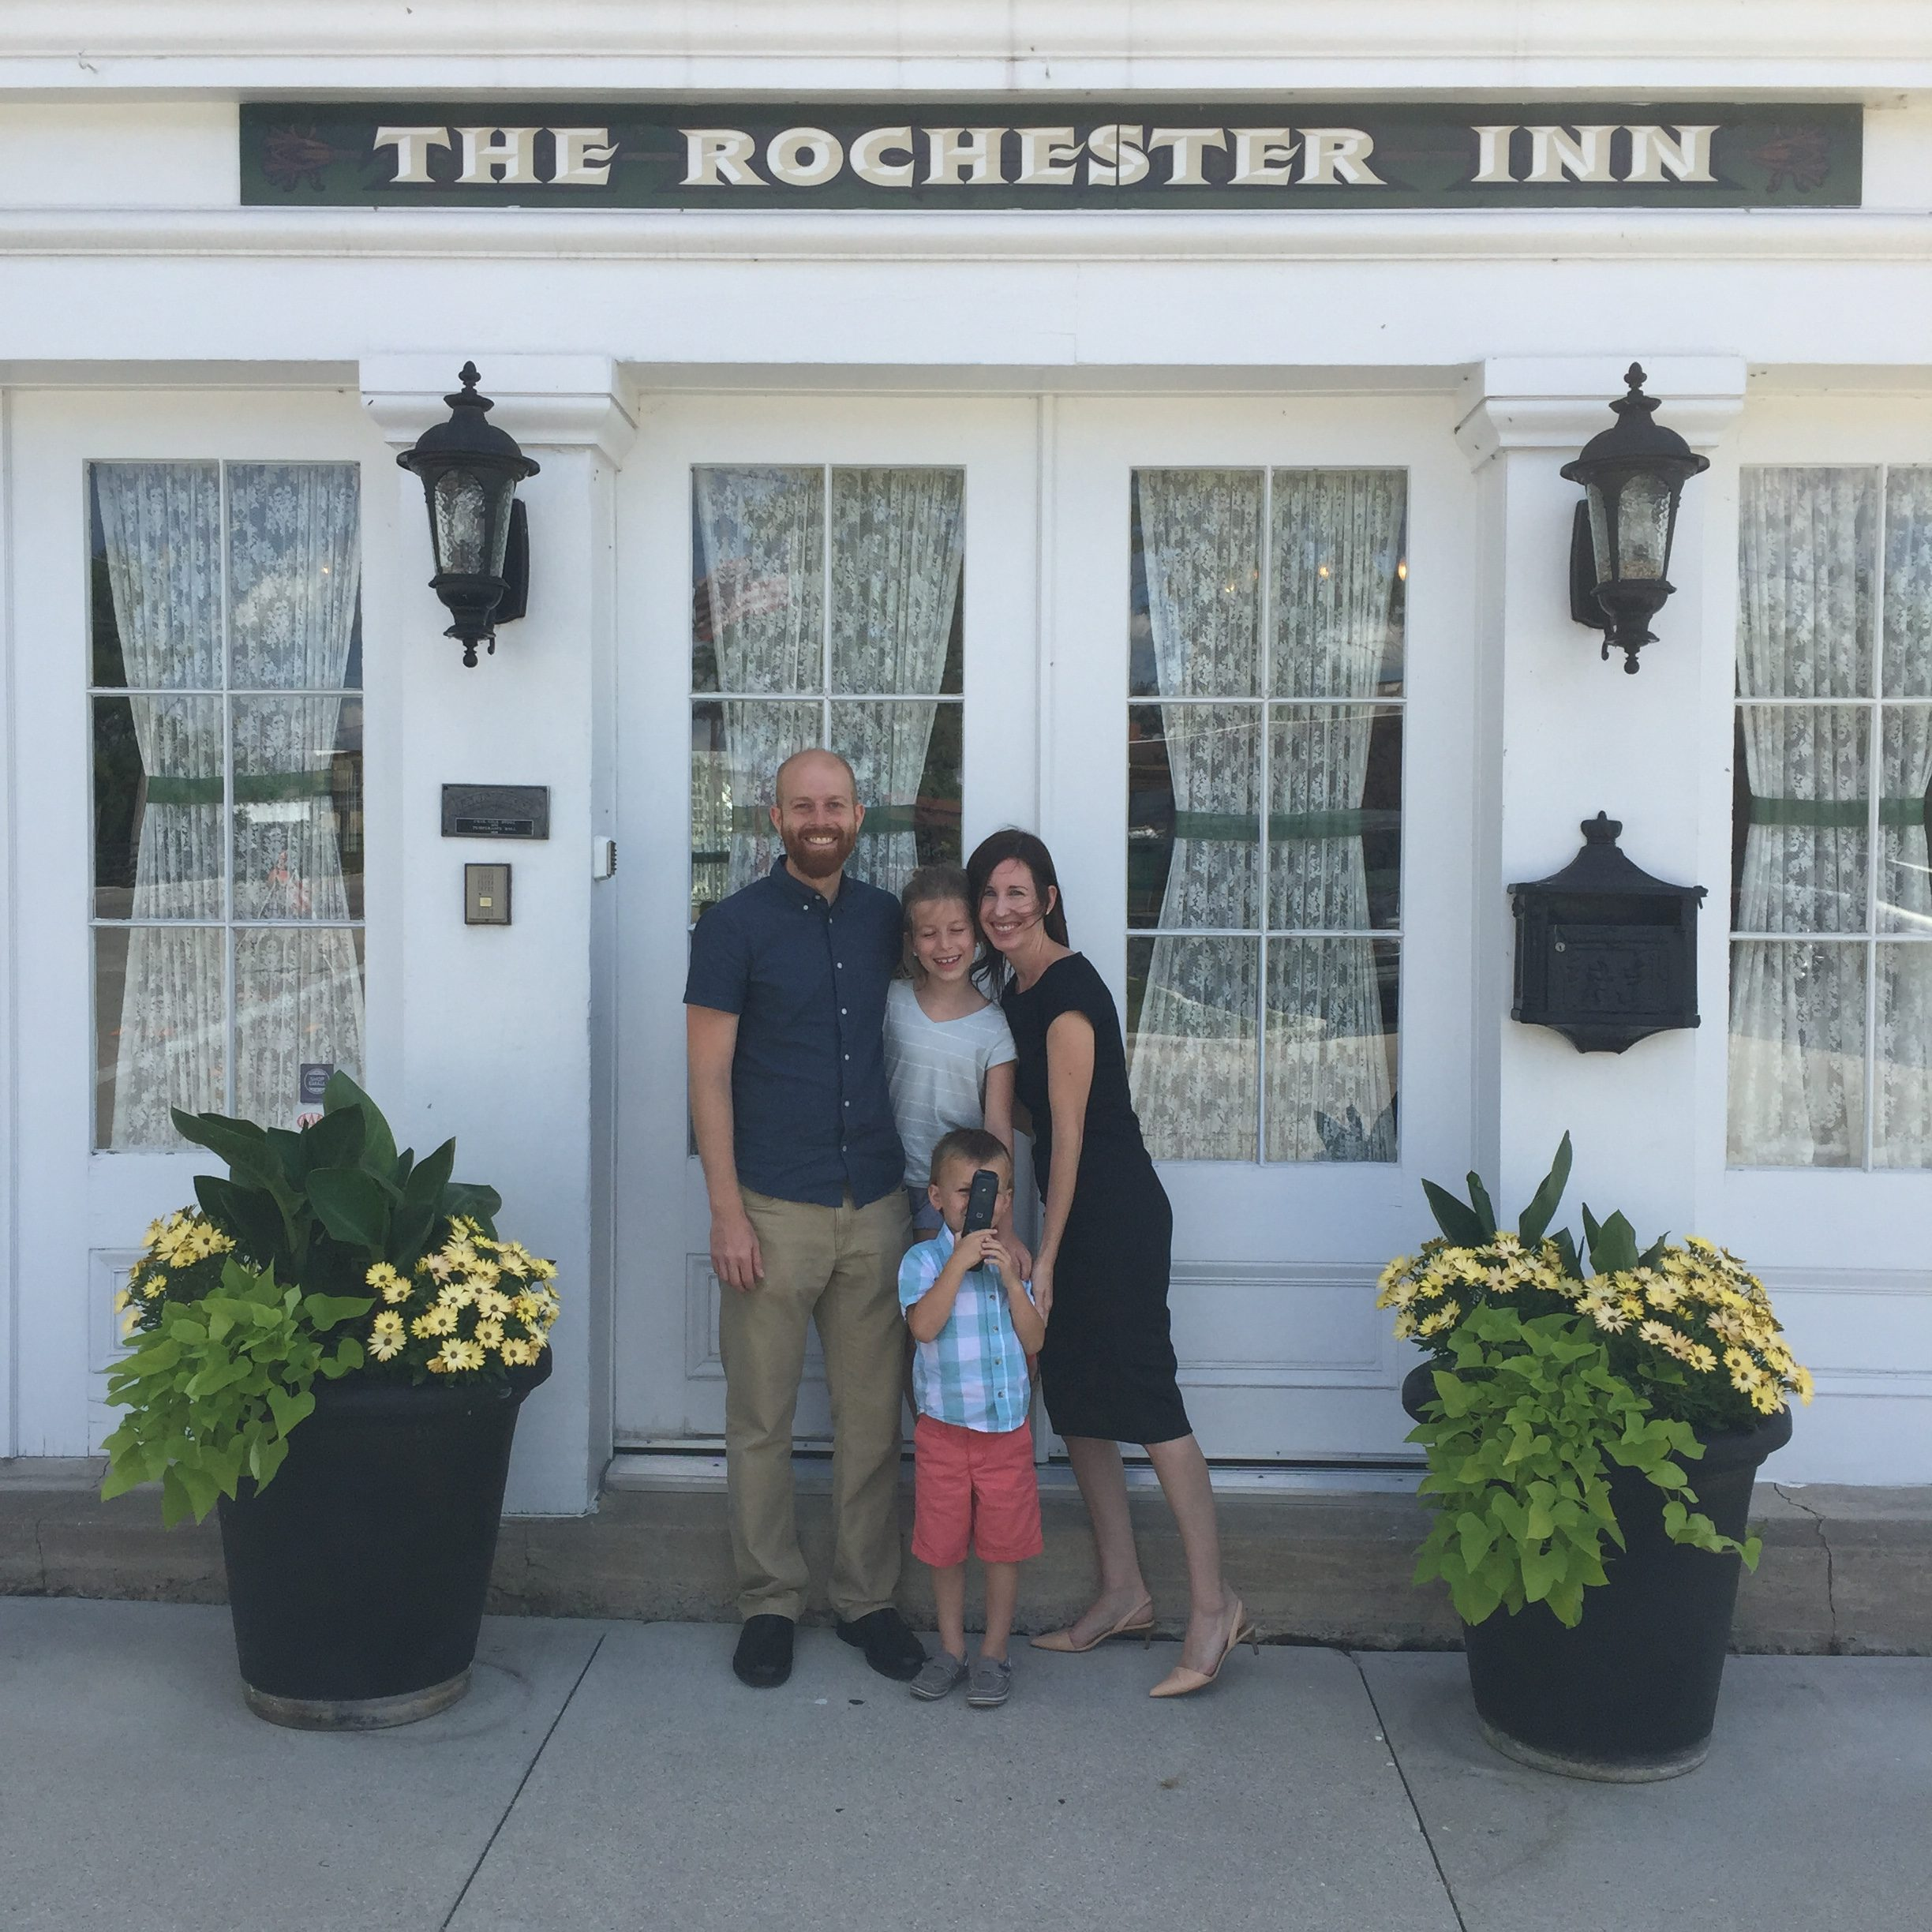 York family outside of The Rochester Inn, Sheboygan Falls, WI